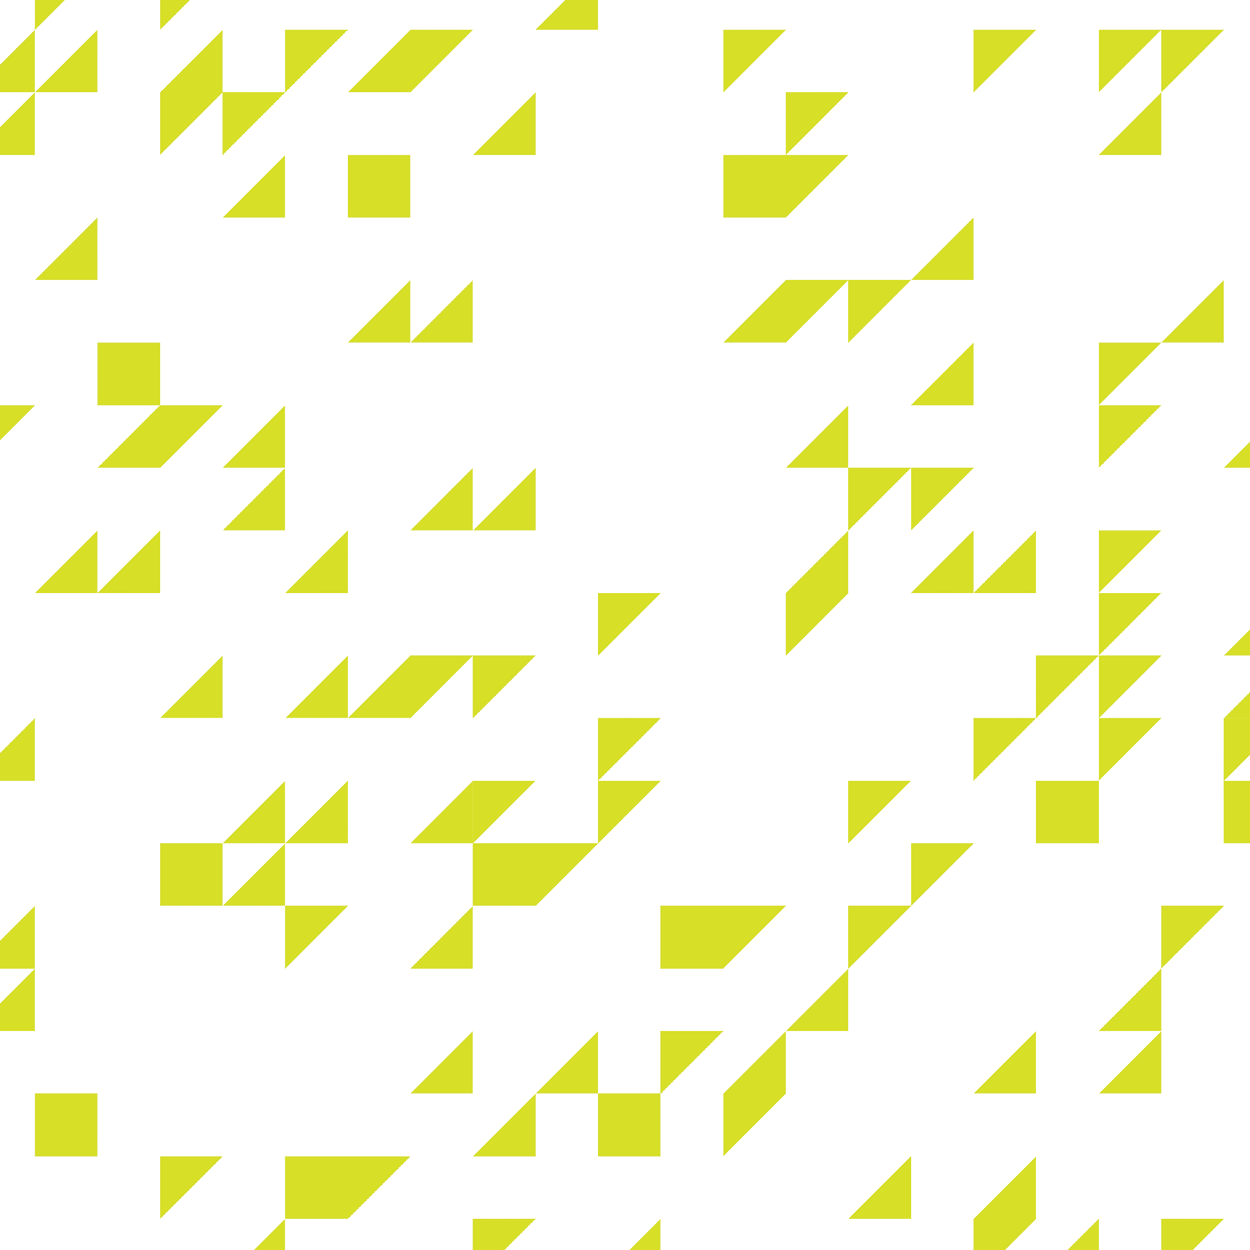 equilateral-tri-grid 7